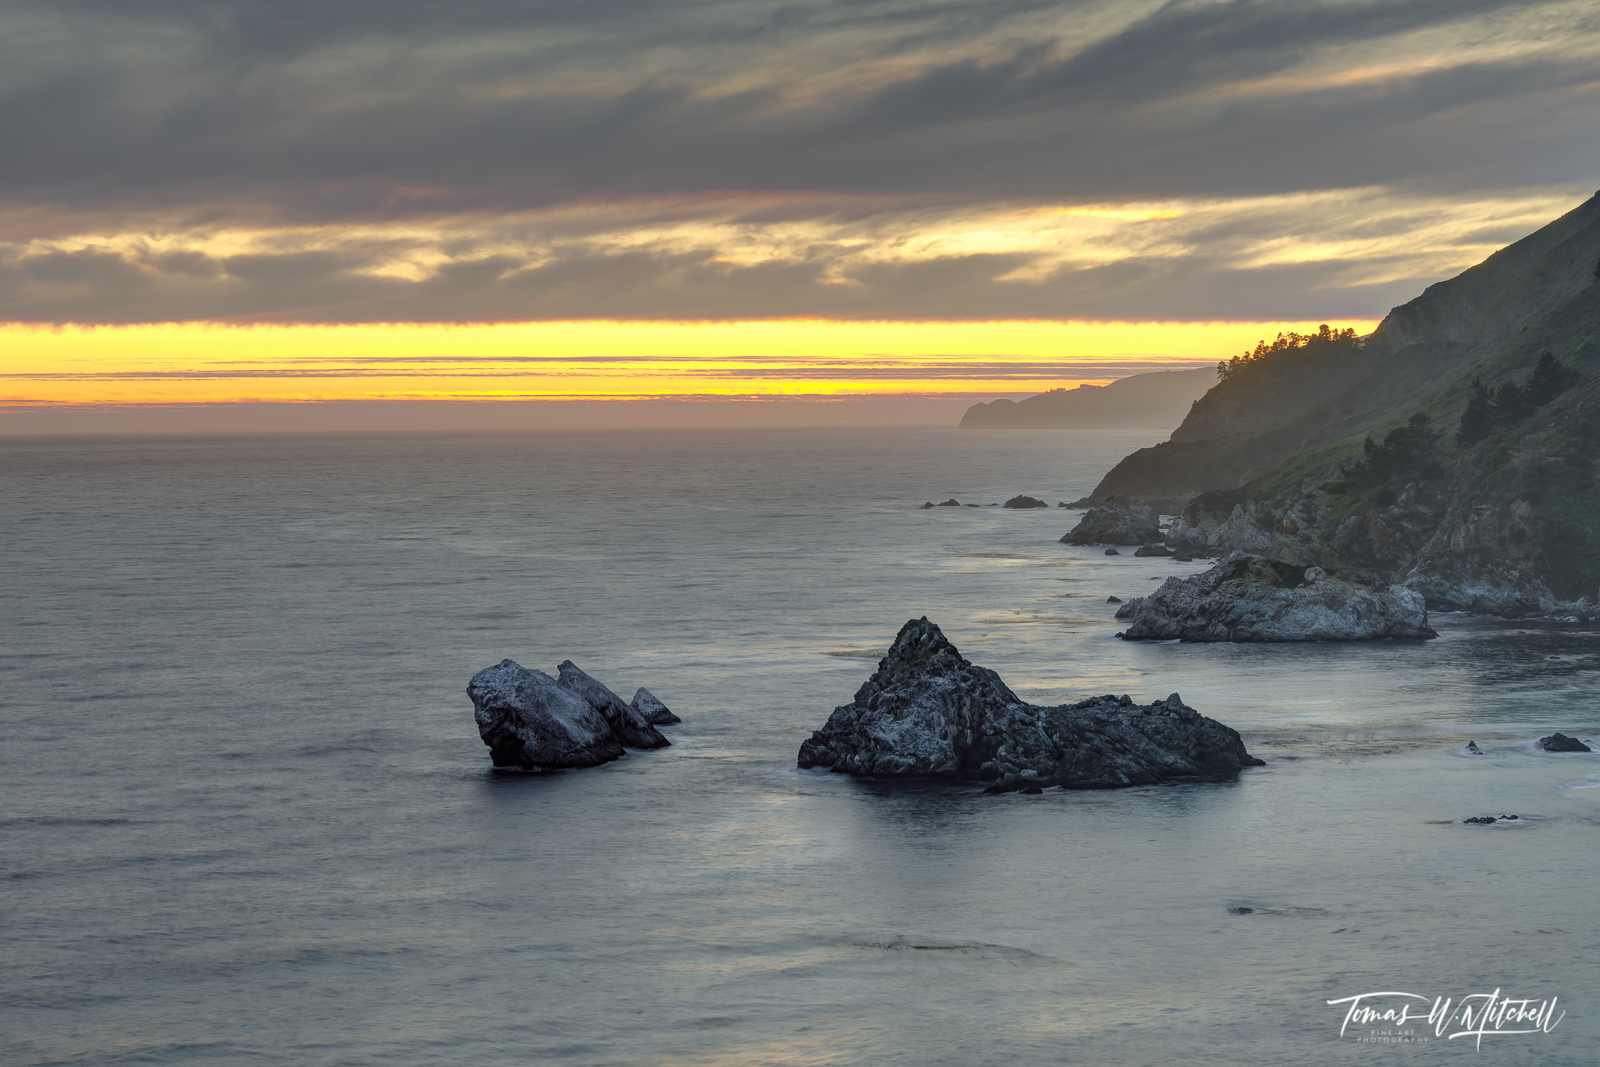 big sur, california, limited edition, museum grade, fine art prints, mountains, ocean, rocky beaches, forests, redwood trees, pacific coast highway, monterey county, sunset, photo